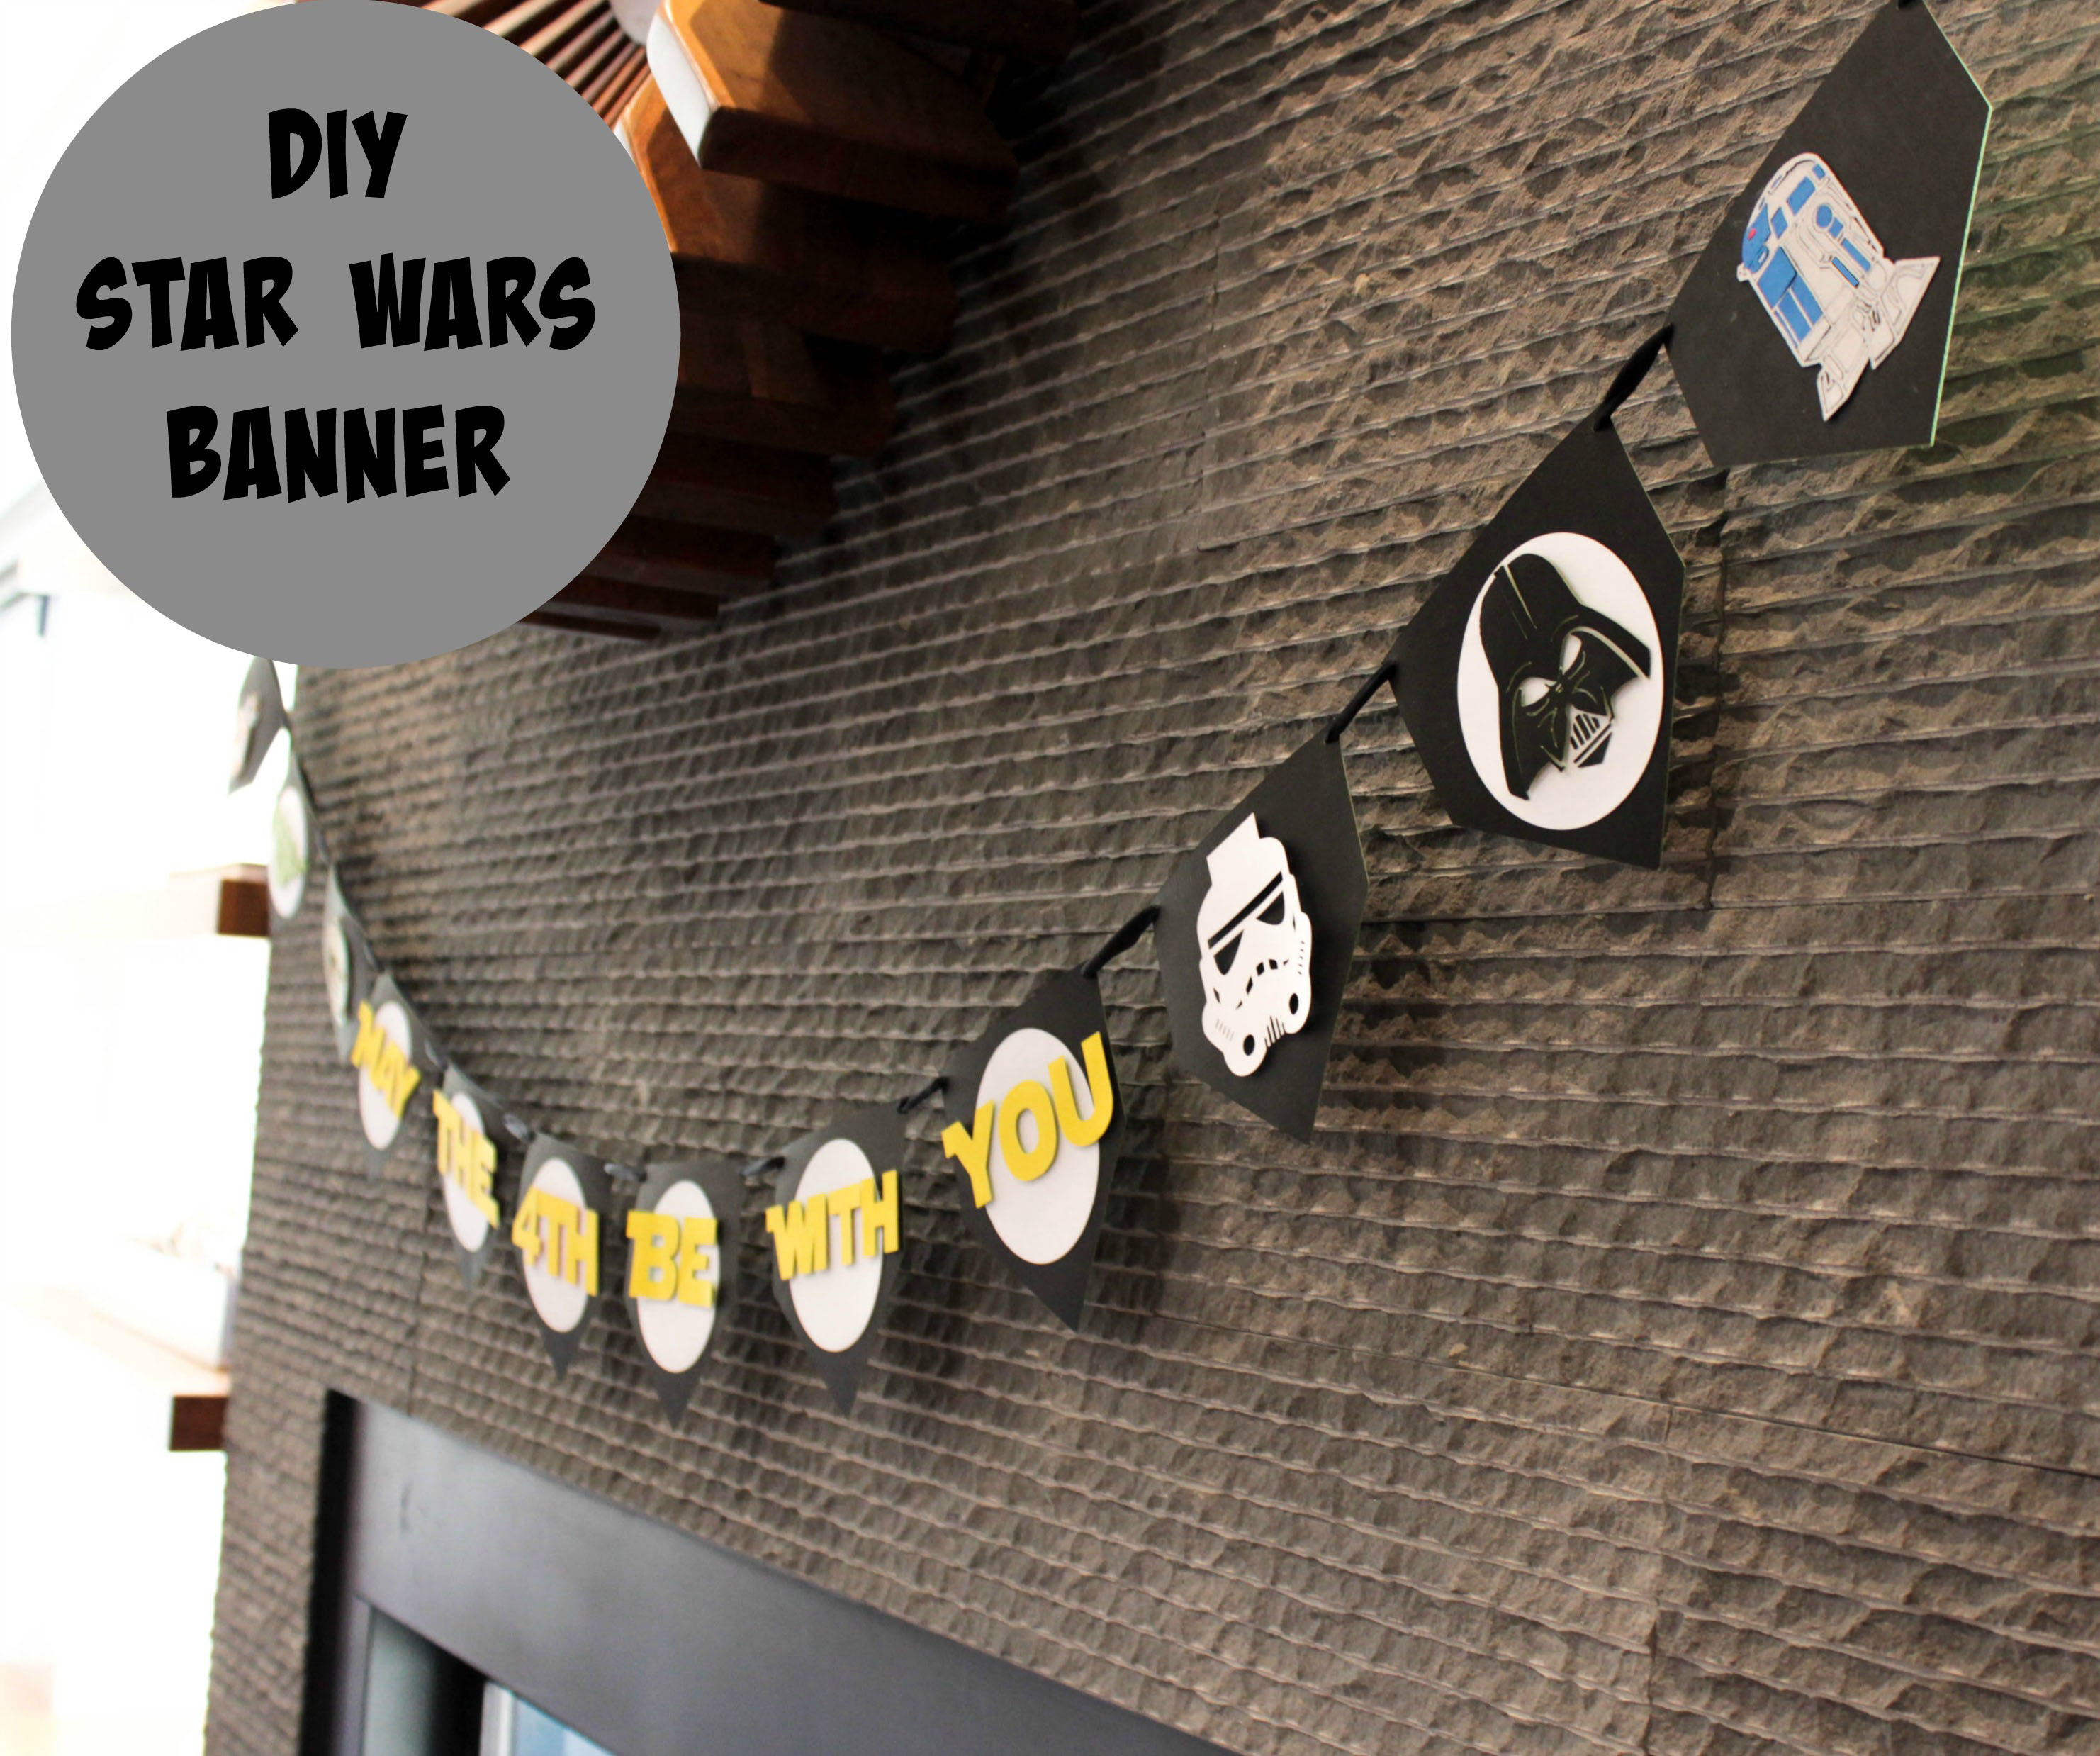 DIY Star Wars Banner